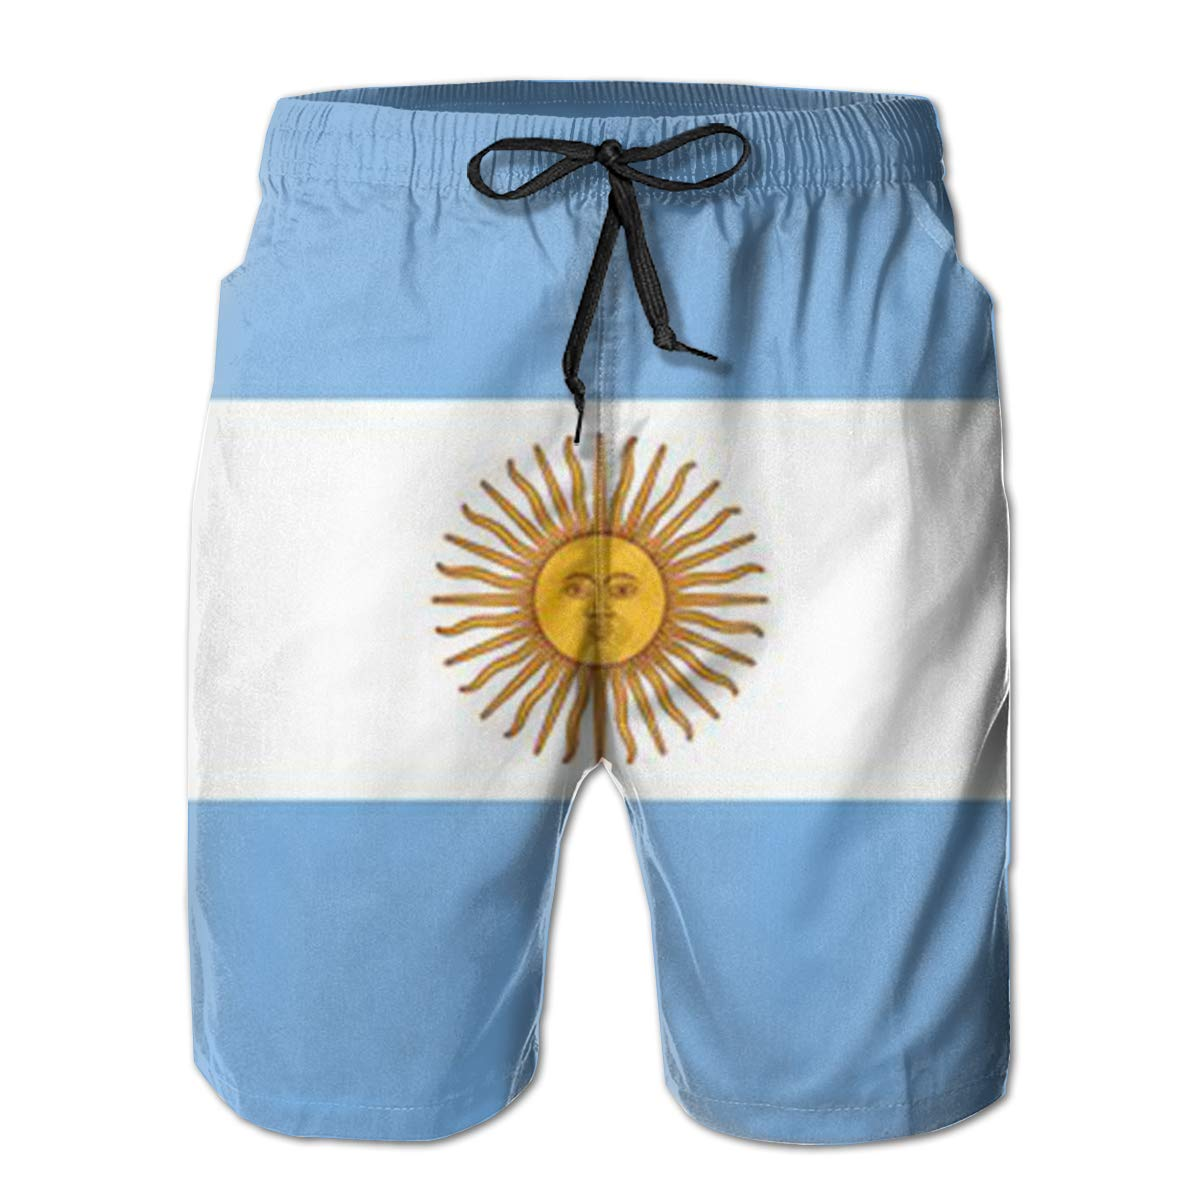 Wexzss Argentina Country Flag Funny Summer Quick-Drying Swim Trunks Beach Shorts Cargo Shorts